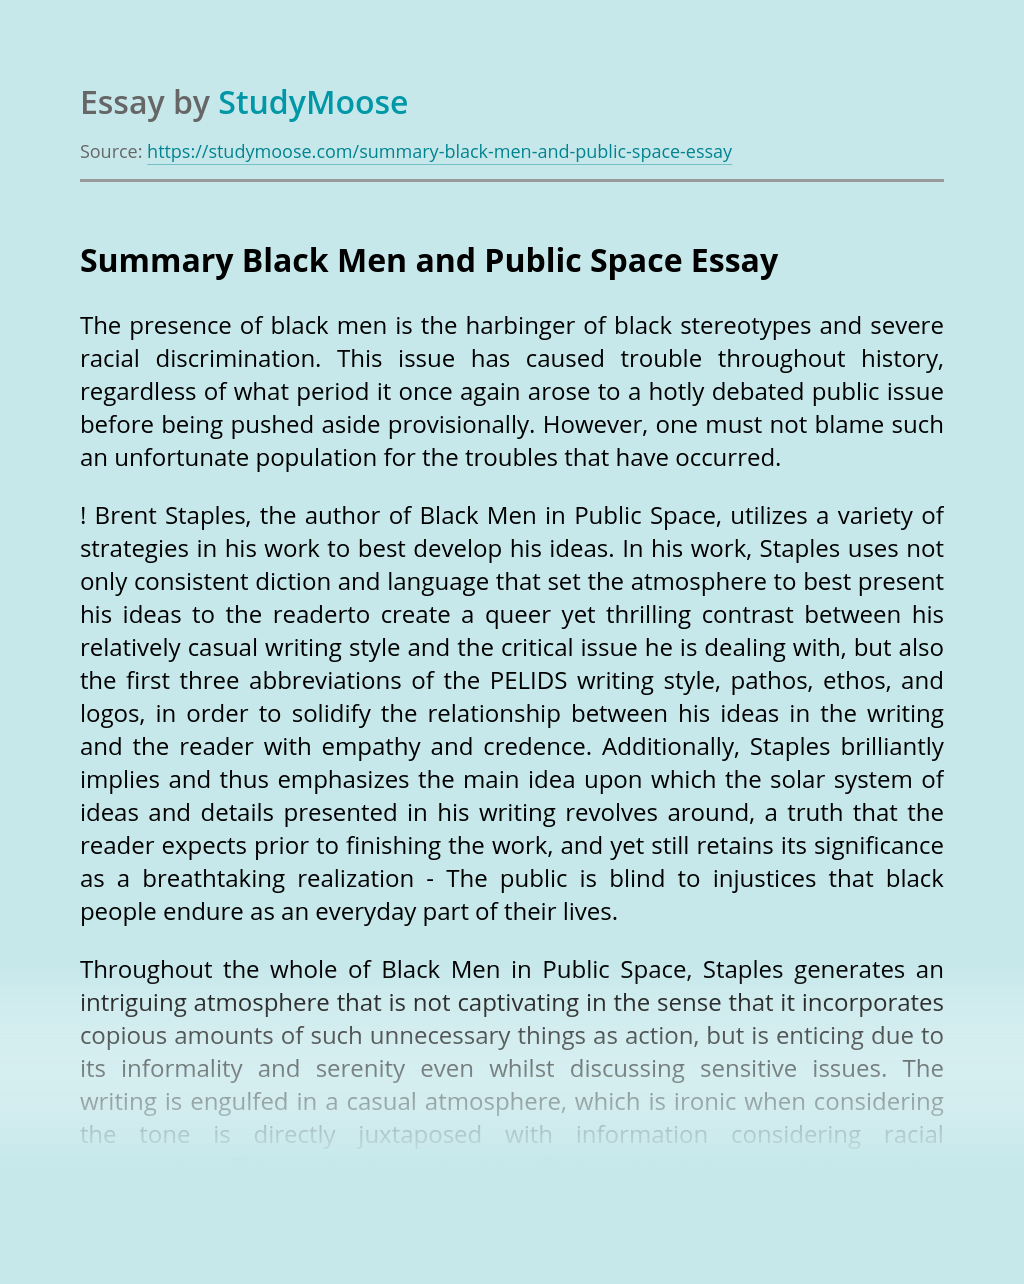 Summary Black Men and Public Space